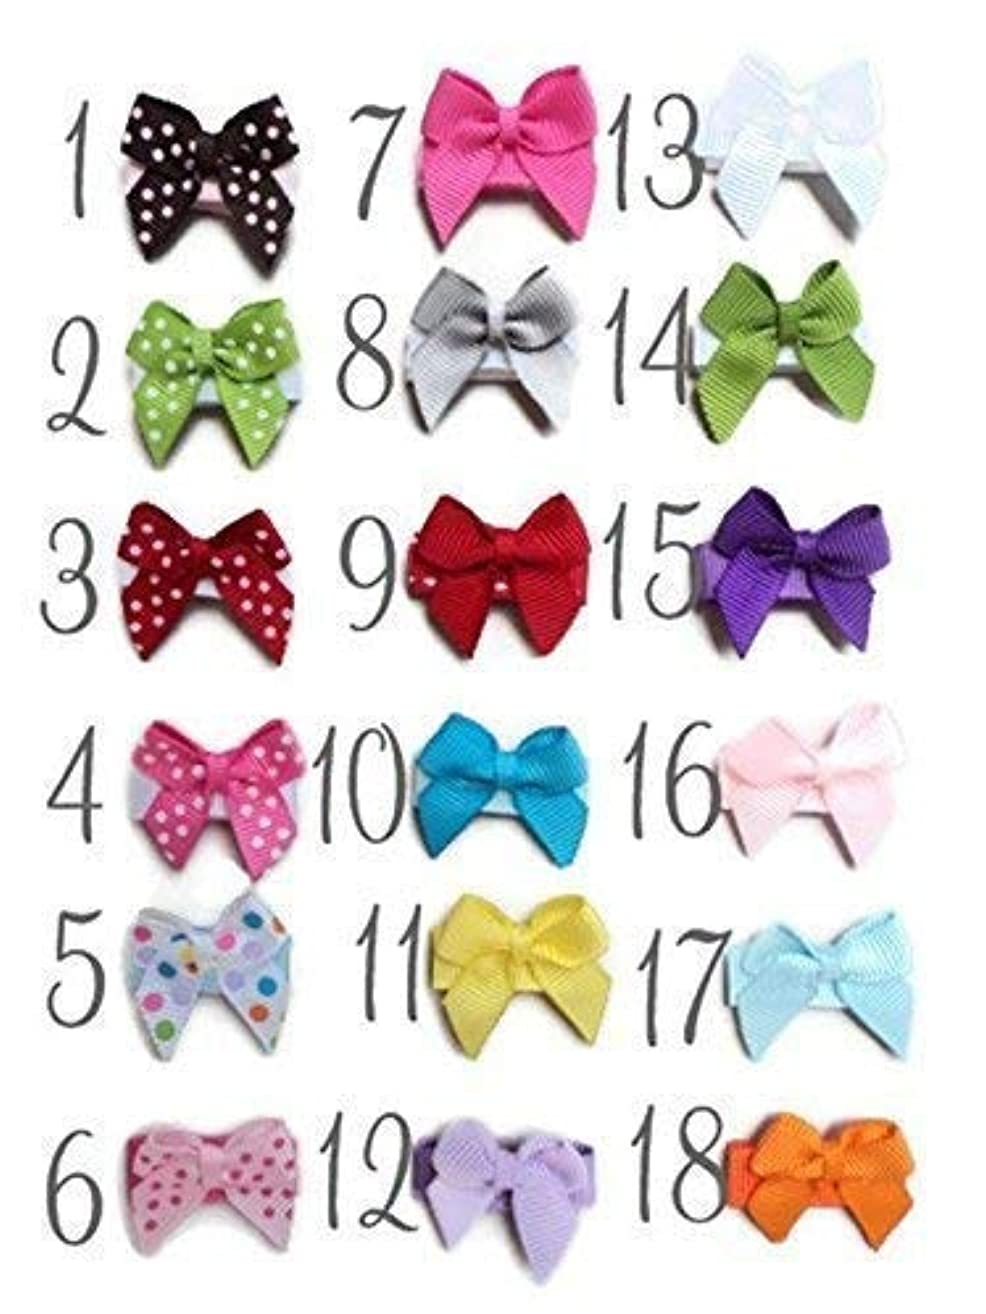 PICK 6 HAIR BOWS Made with VELCRO? brand fasteners for Baby Girl - BEST BABY SHOWER GIFT - Small Bows Traditional Mini Bows Blue White Green Yellow Hot Pink Light Pink Brown Red Lavender YOU PICK 6